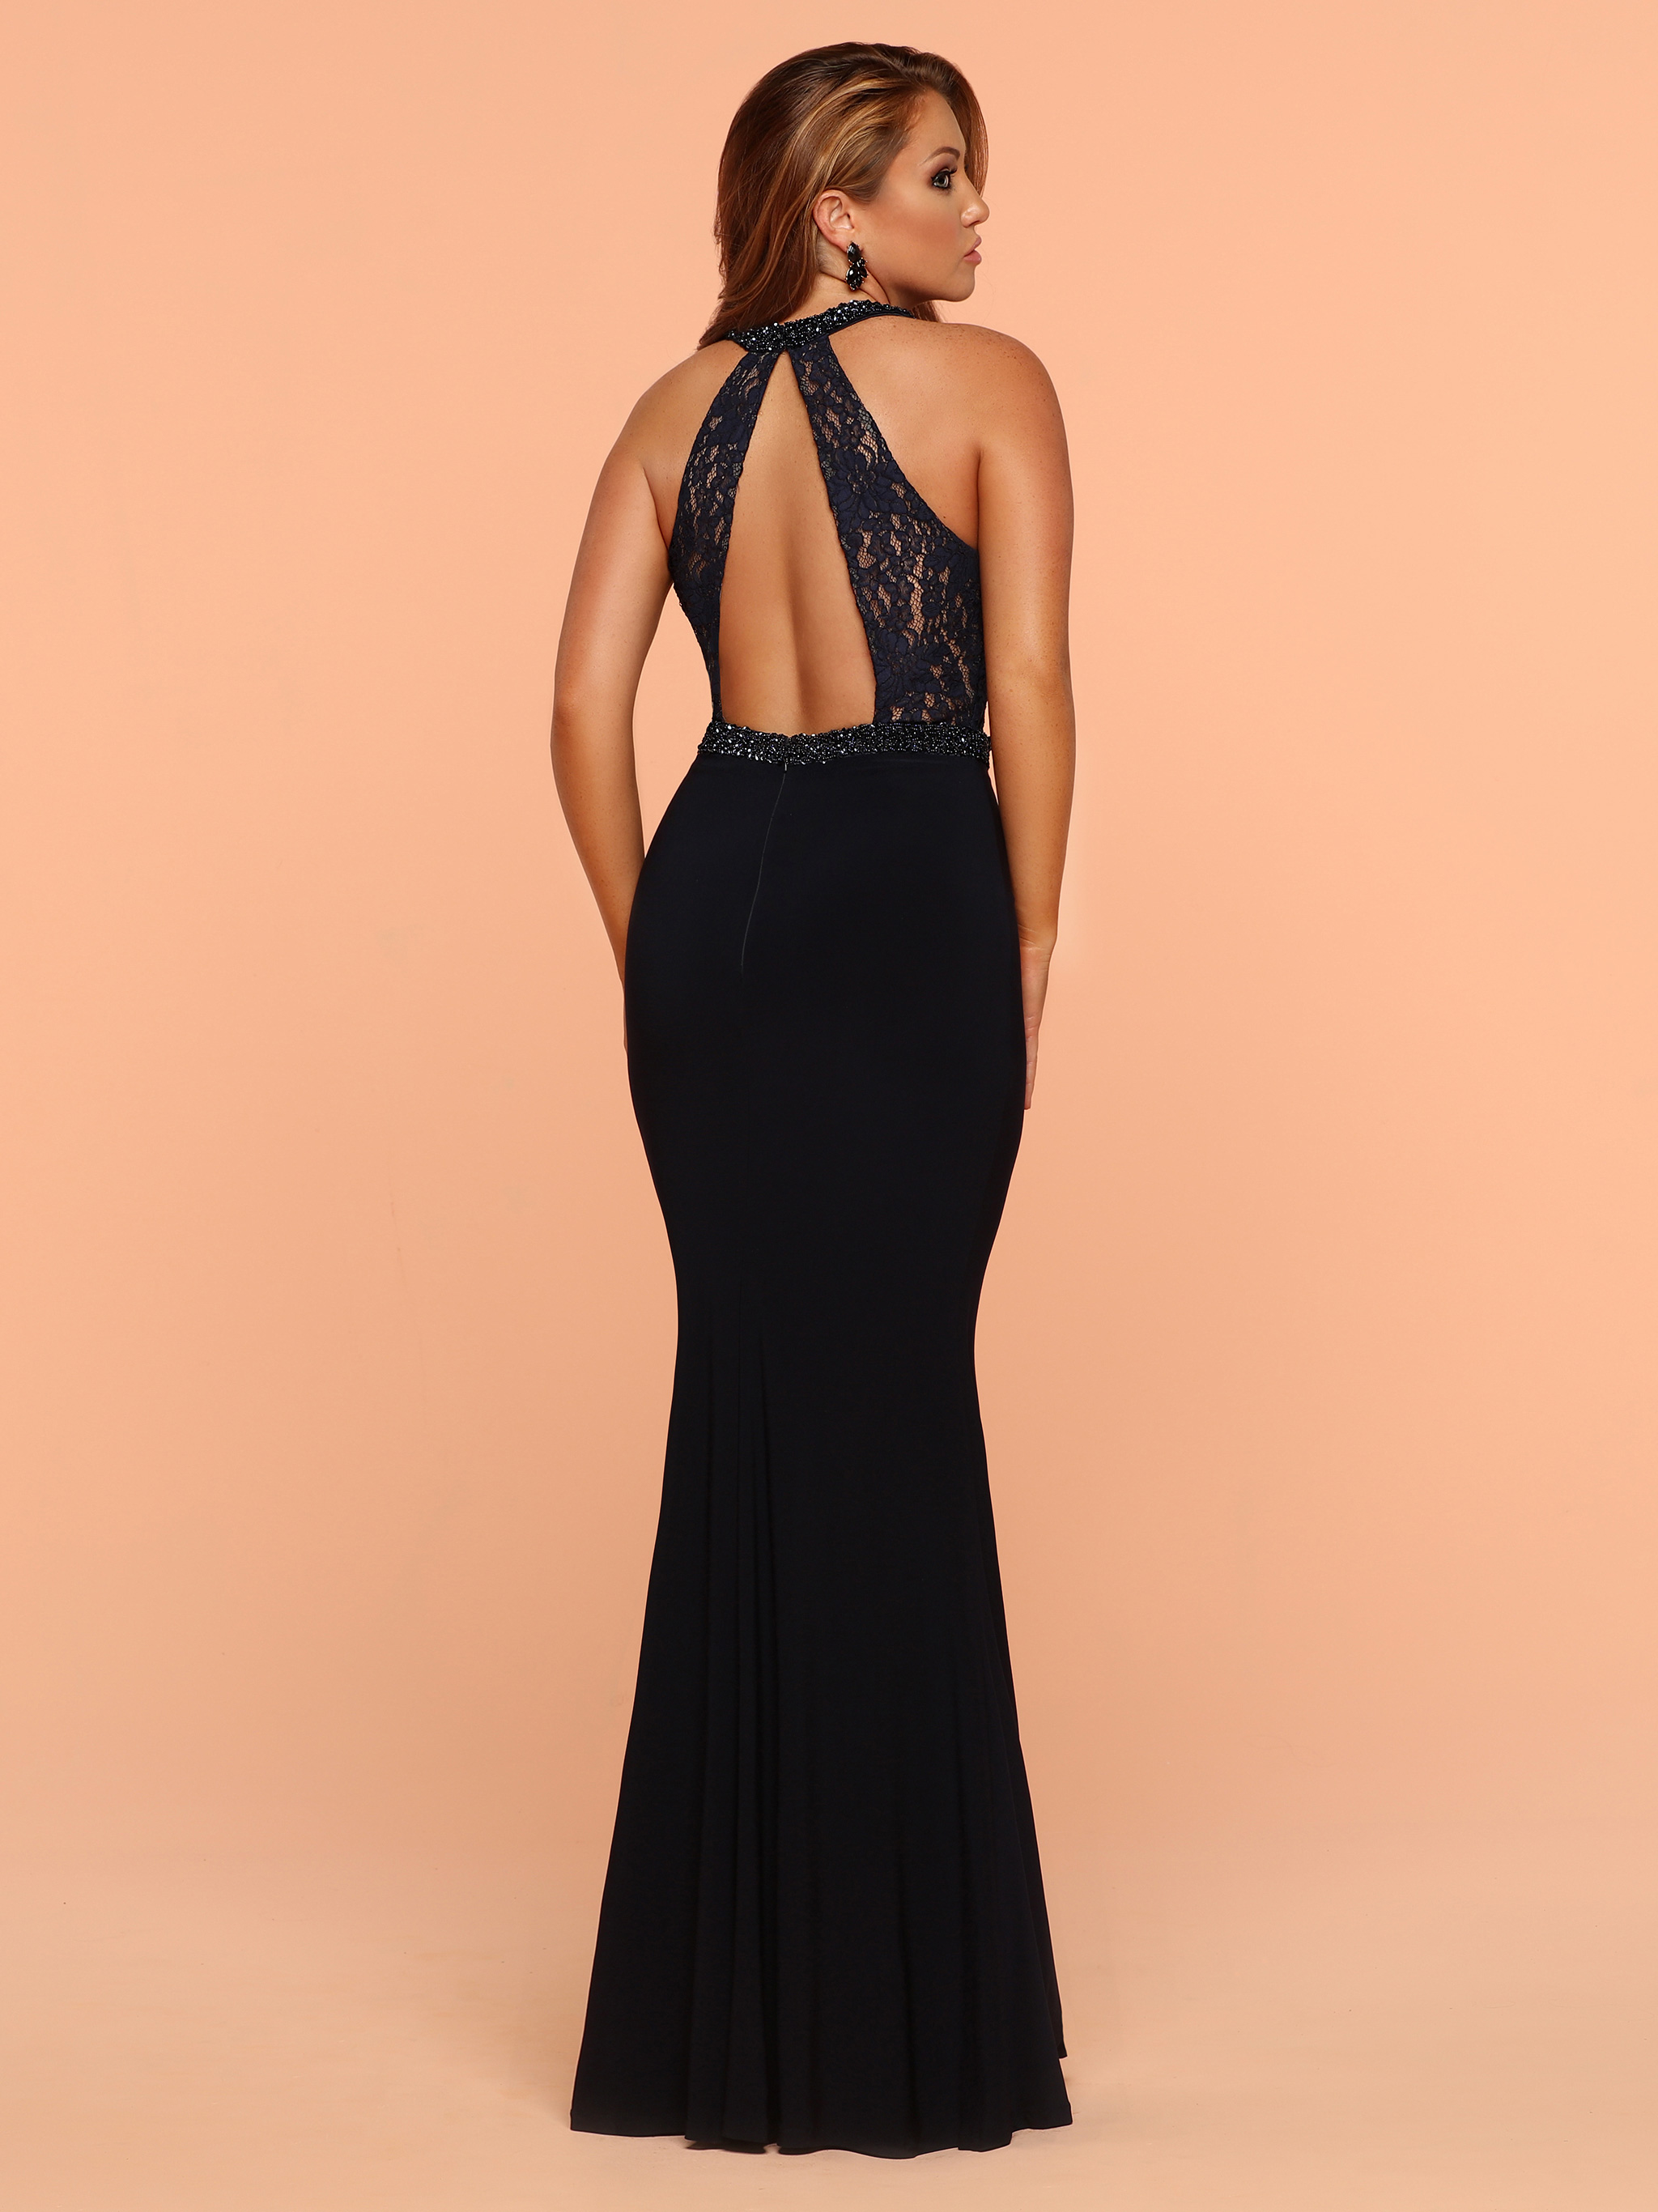 Image showing back view of style #71828